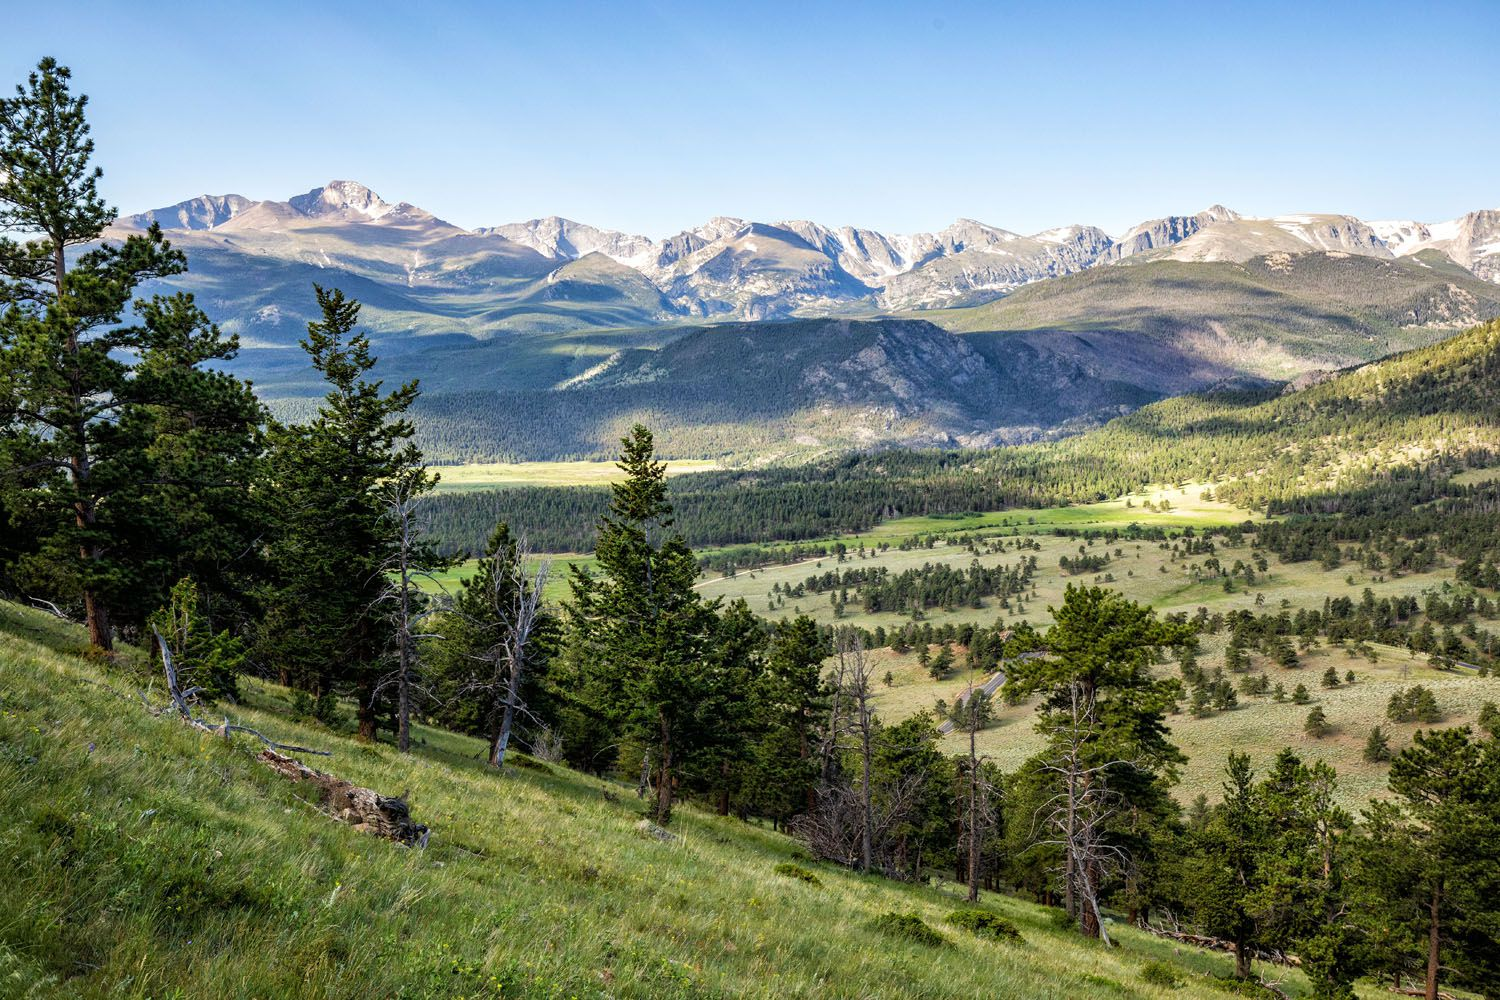 Moraine Park things to do in Rocky Mountain National Park